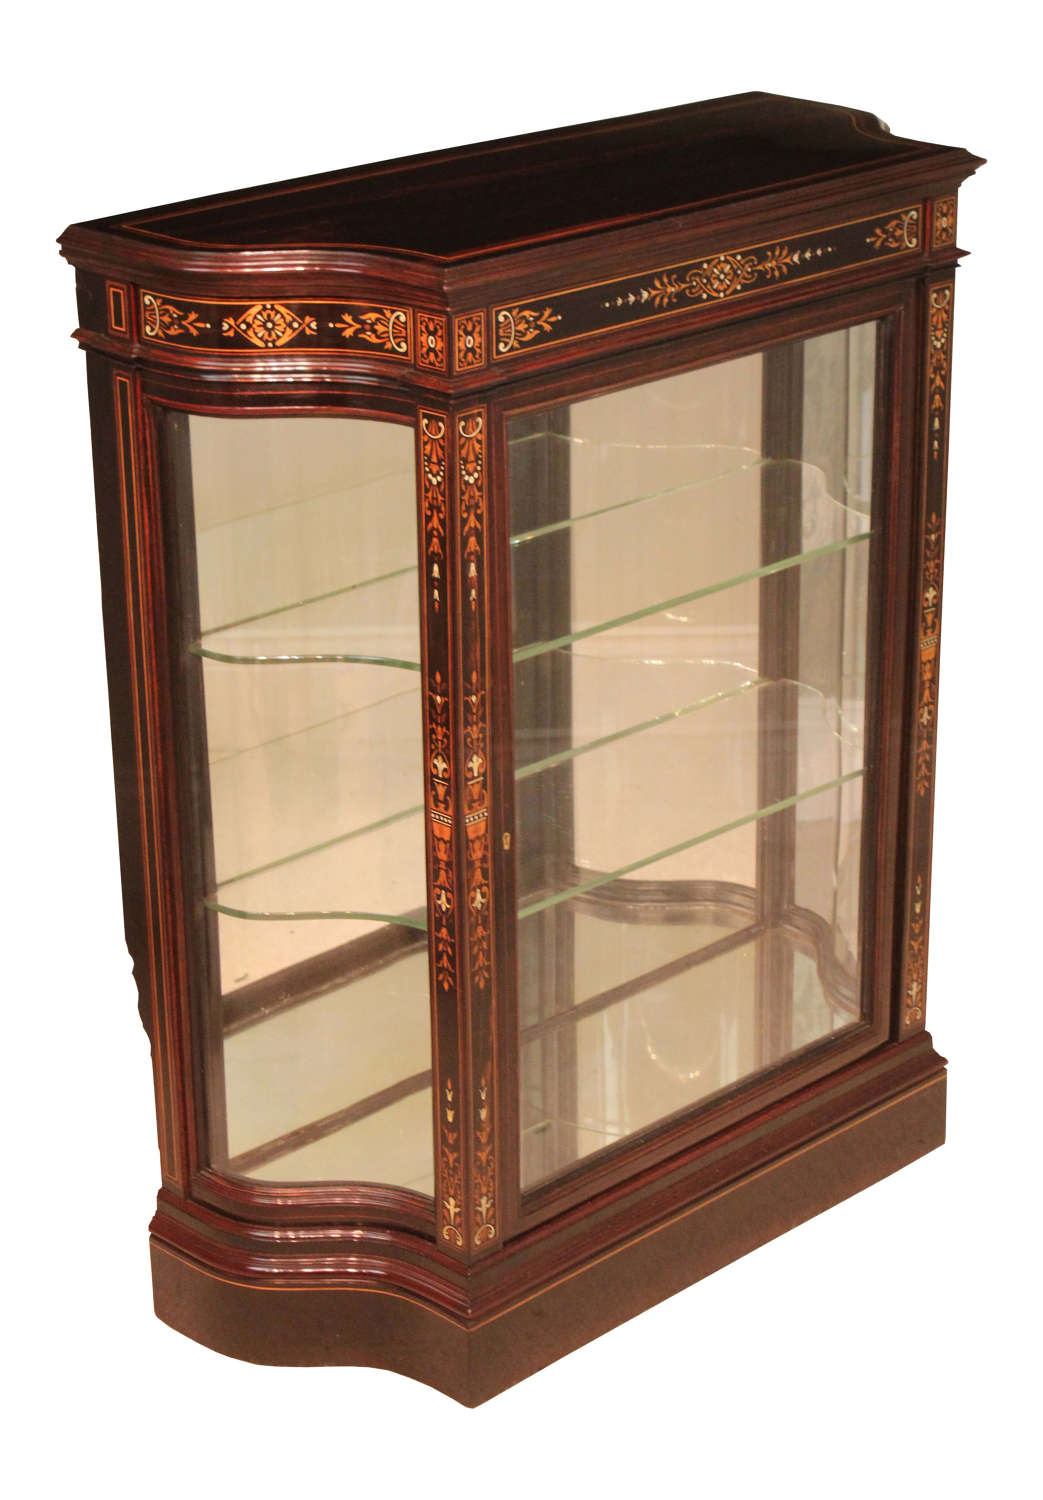 A Victorian Coromandel Aesthetical Serpentine ended Pier Cabinet